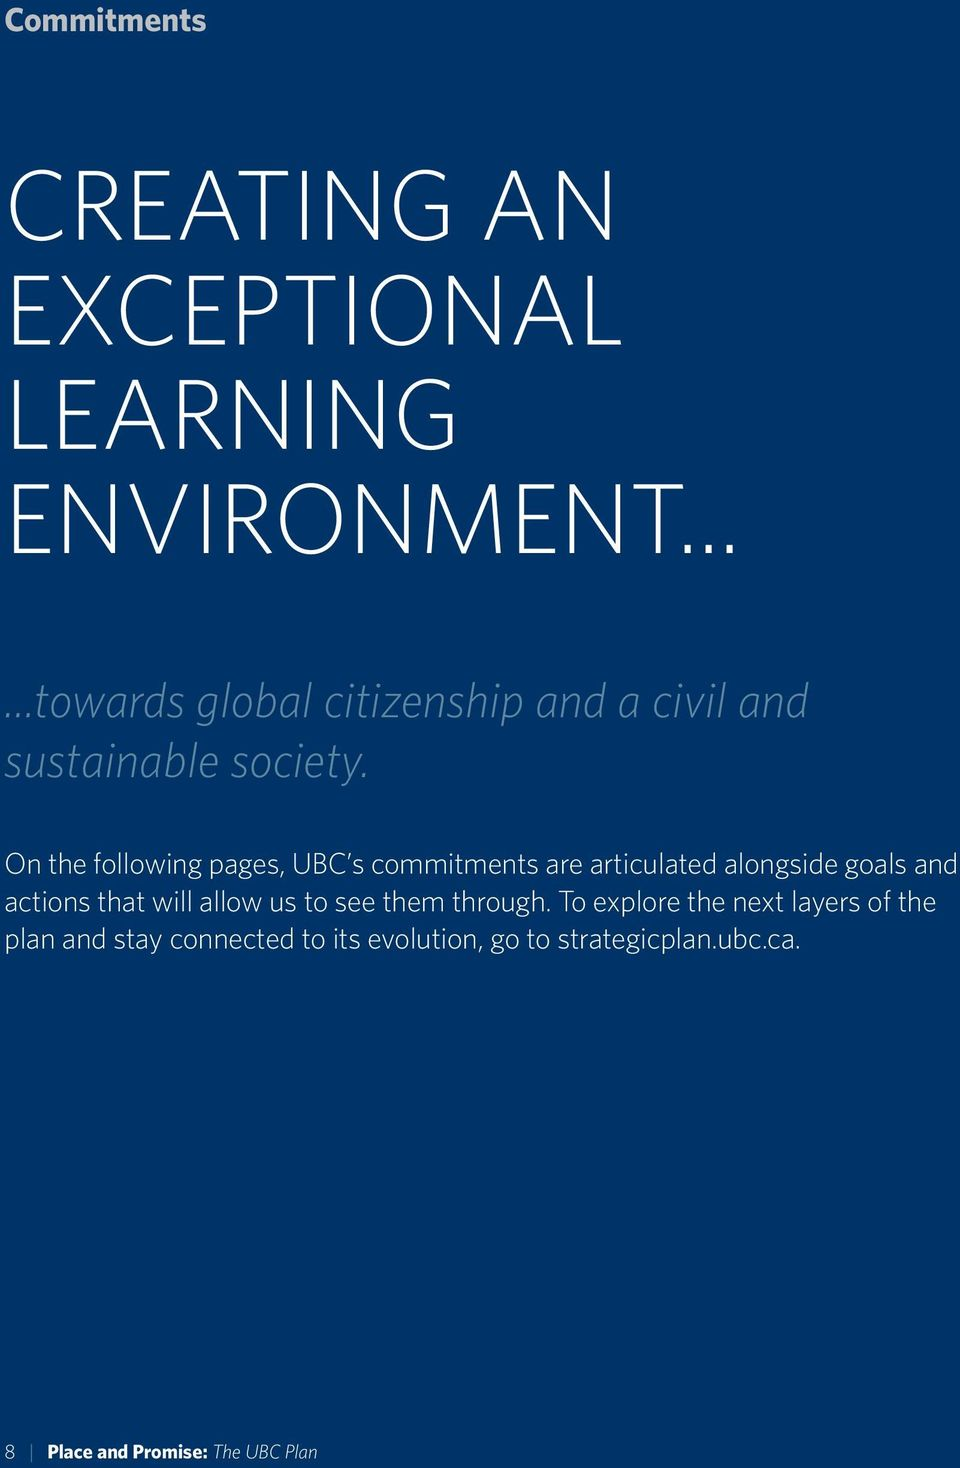 On the following pages, UBC s commitments are articulated alongside goals and actions that will allow us